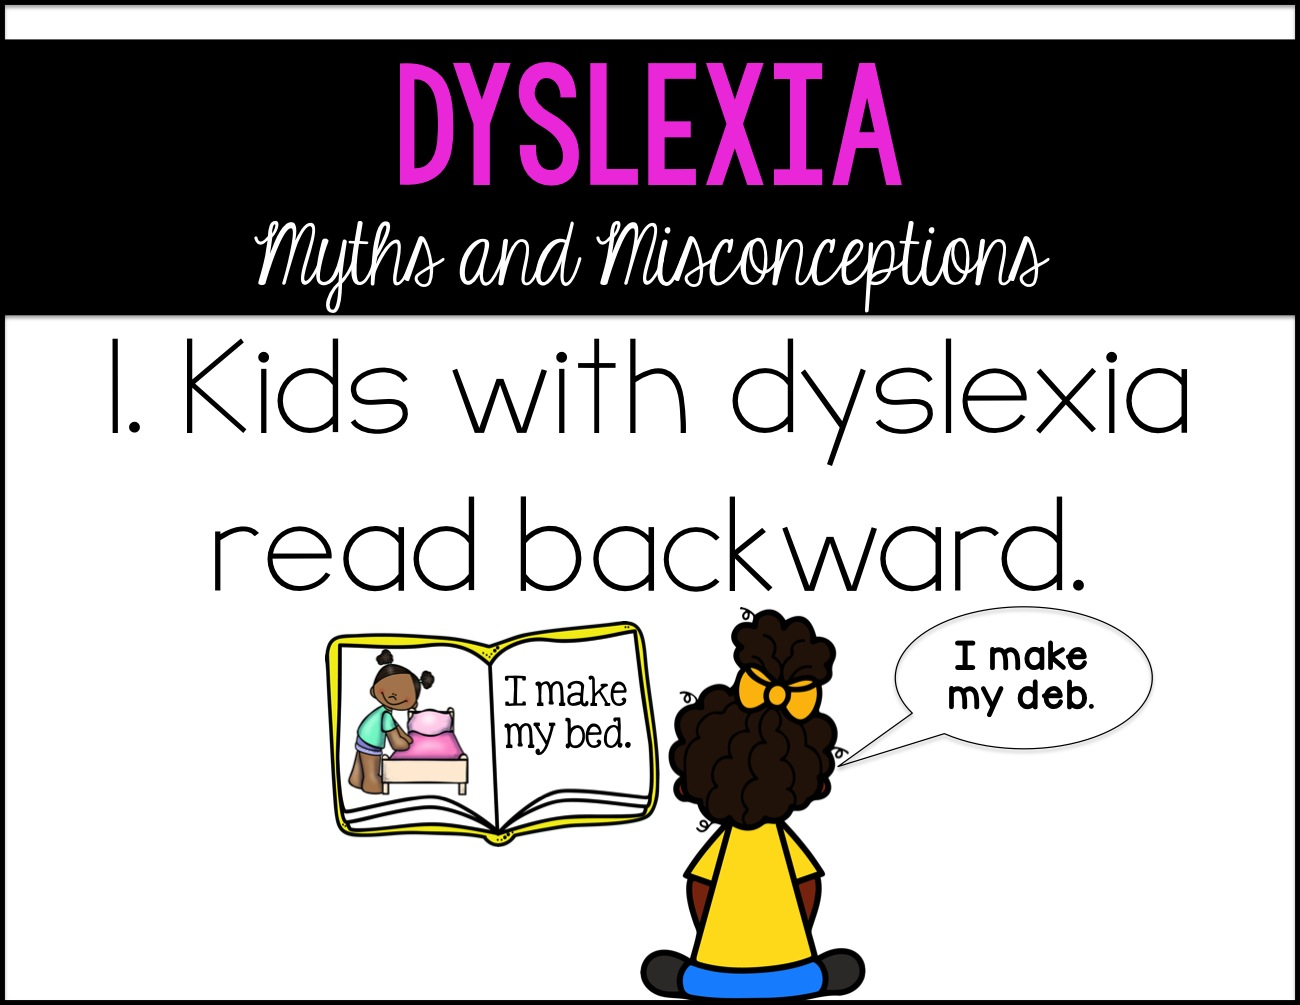 dyslexia misconceptions and myths essay In september 2005, i produced a documentary for channel 4, the dyslexia myth, that asked searching questions about the disorder – and, predictably, this sparked a national row of its own.